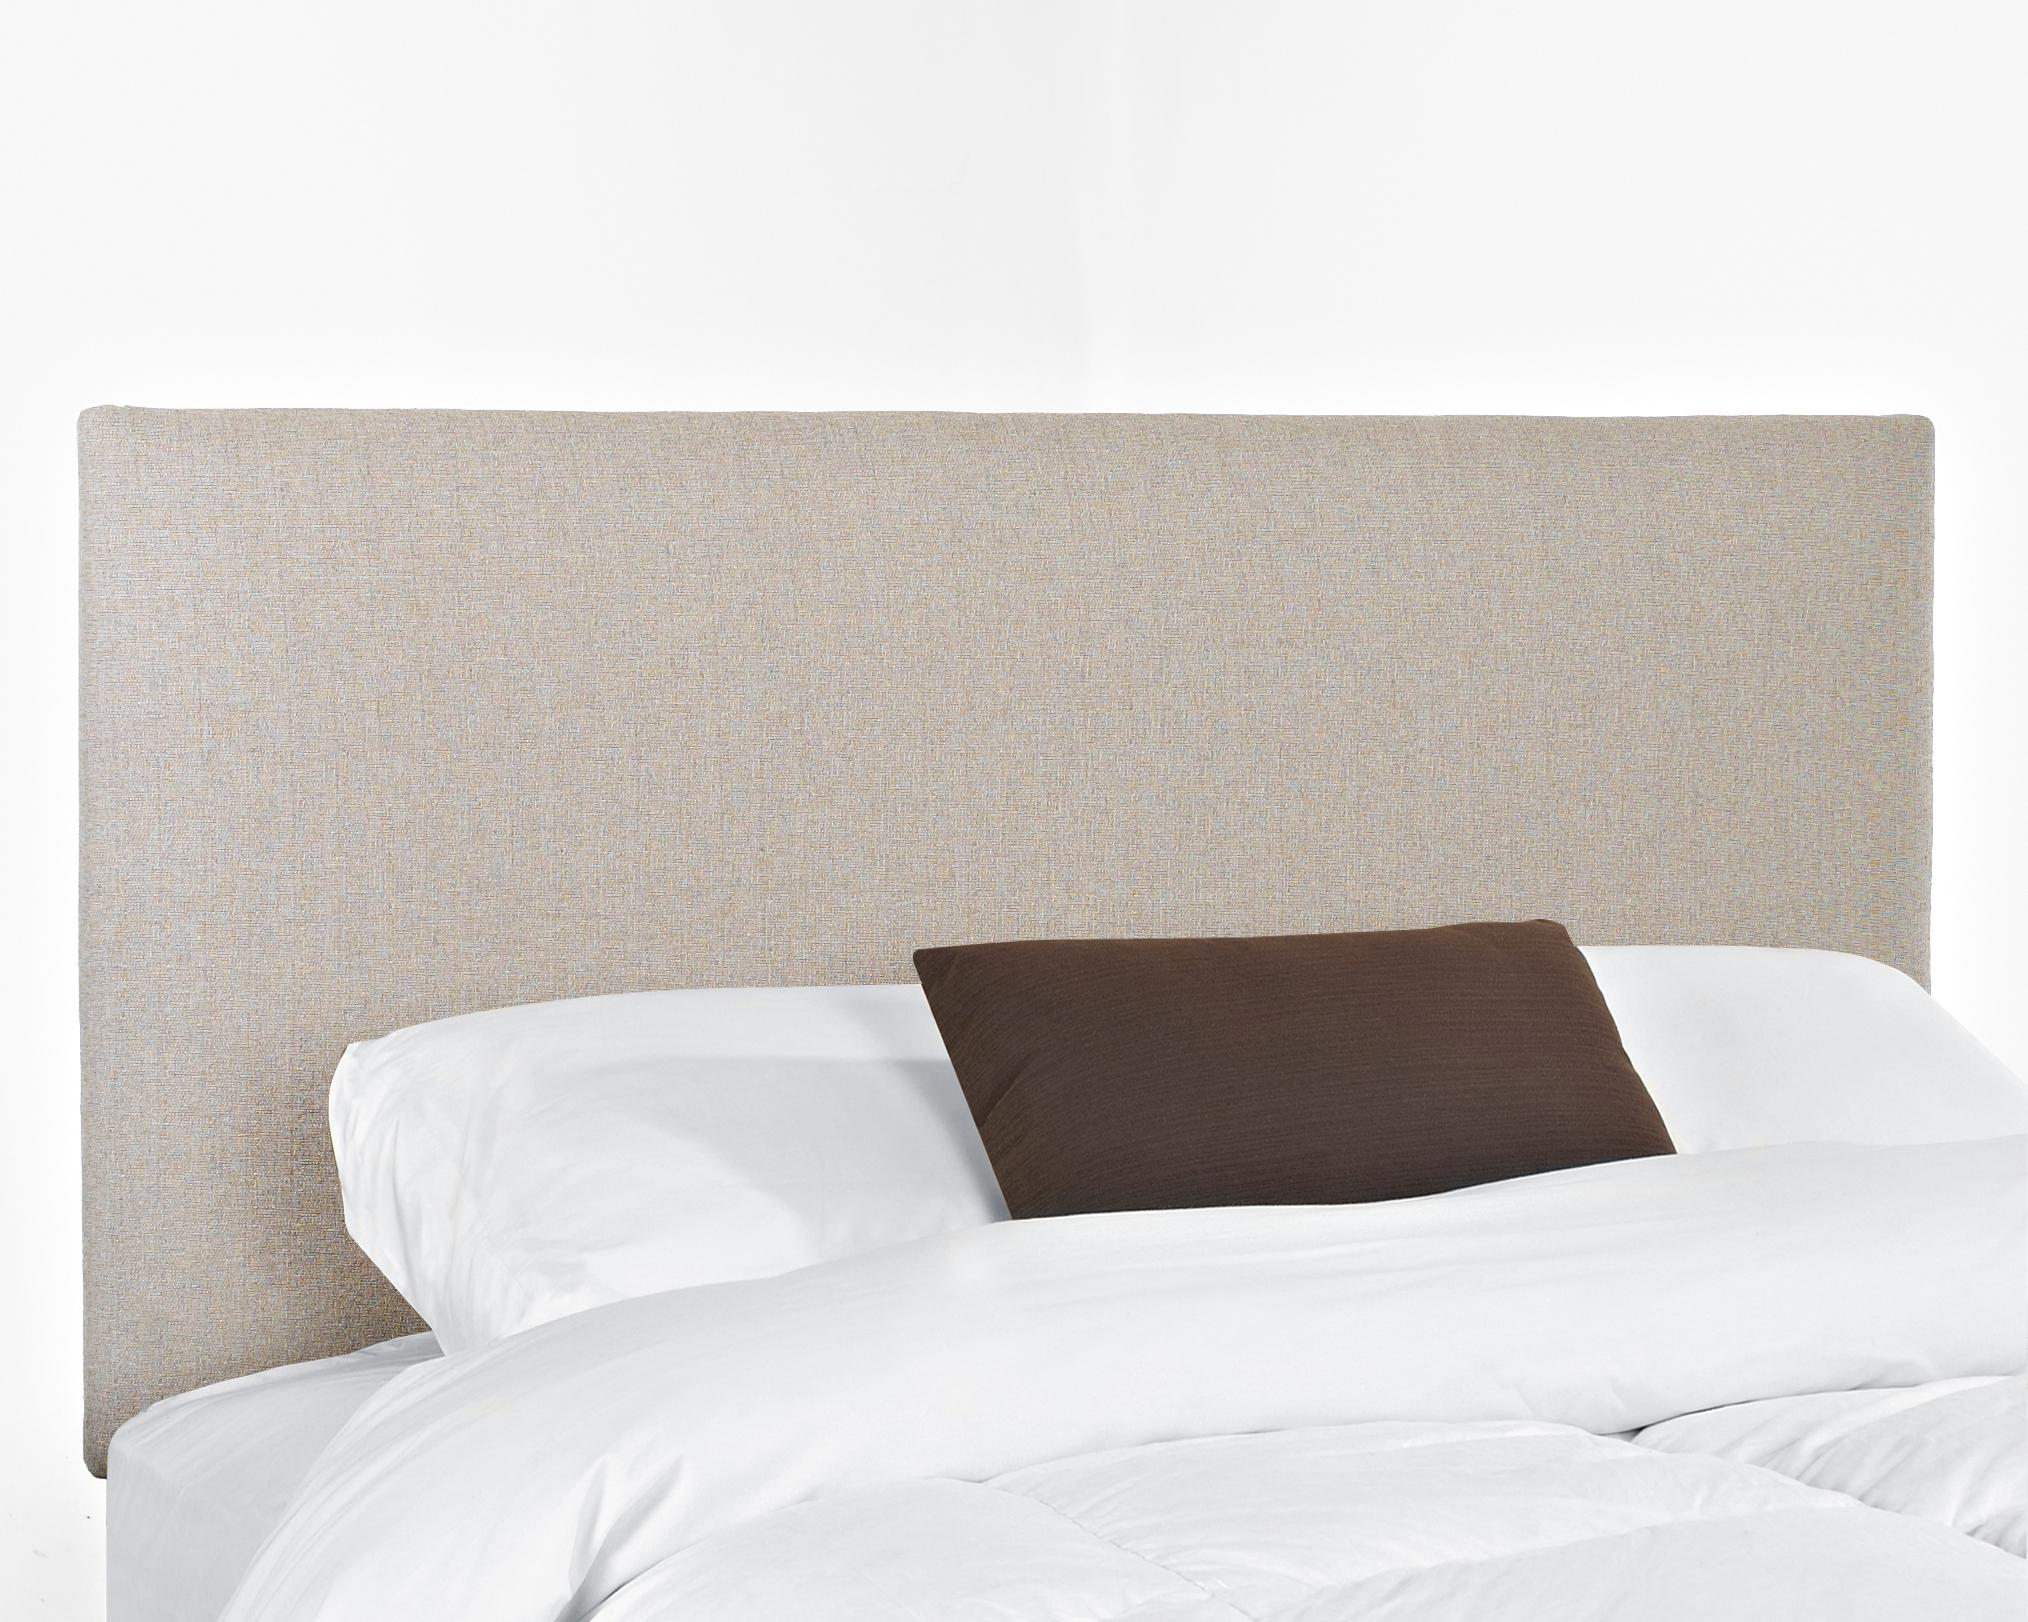 Upholstered Beds and Headboards Heron Twin Headboard by Klaussner at Northeast Factory Direct